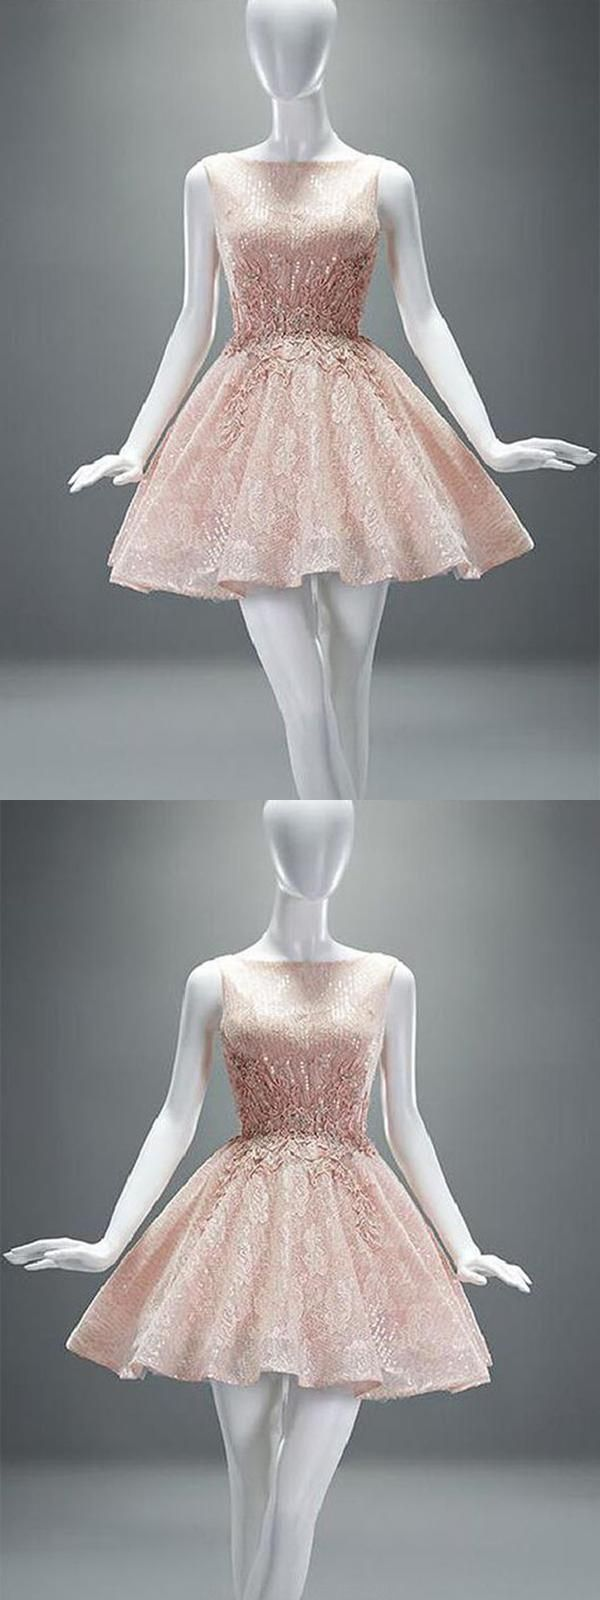 Customized engrossing pink prom dresses prom dresses for cheap